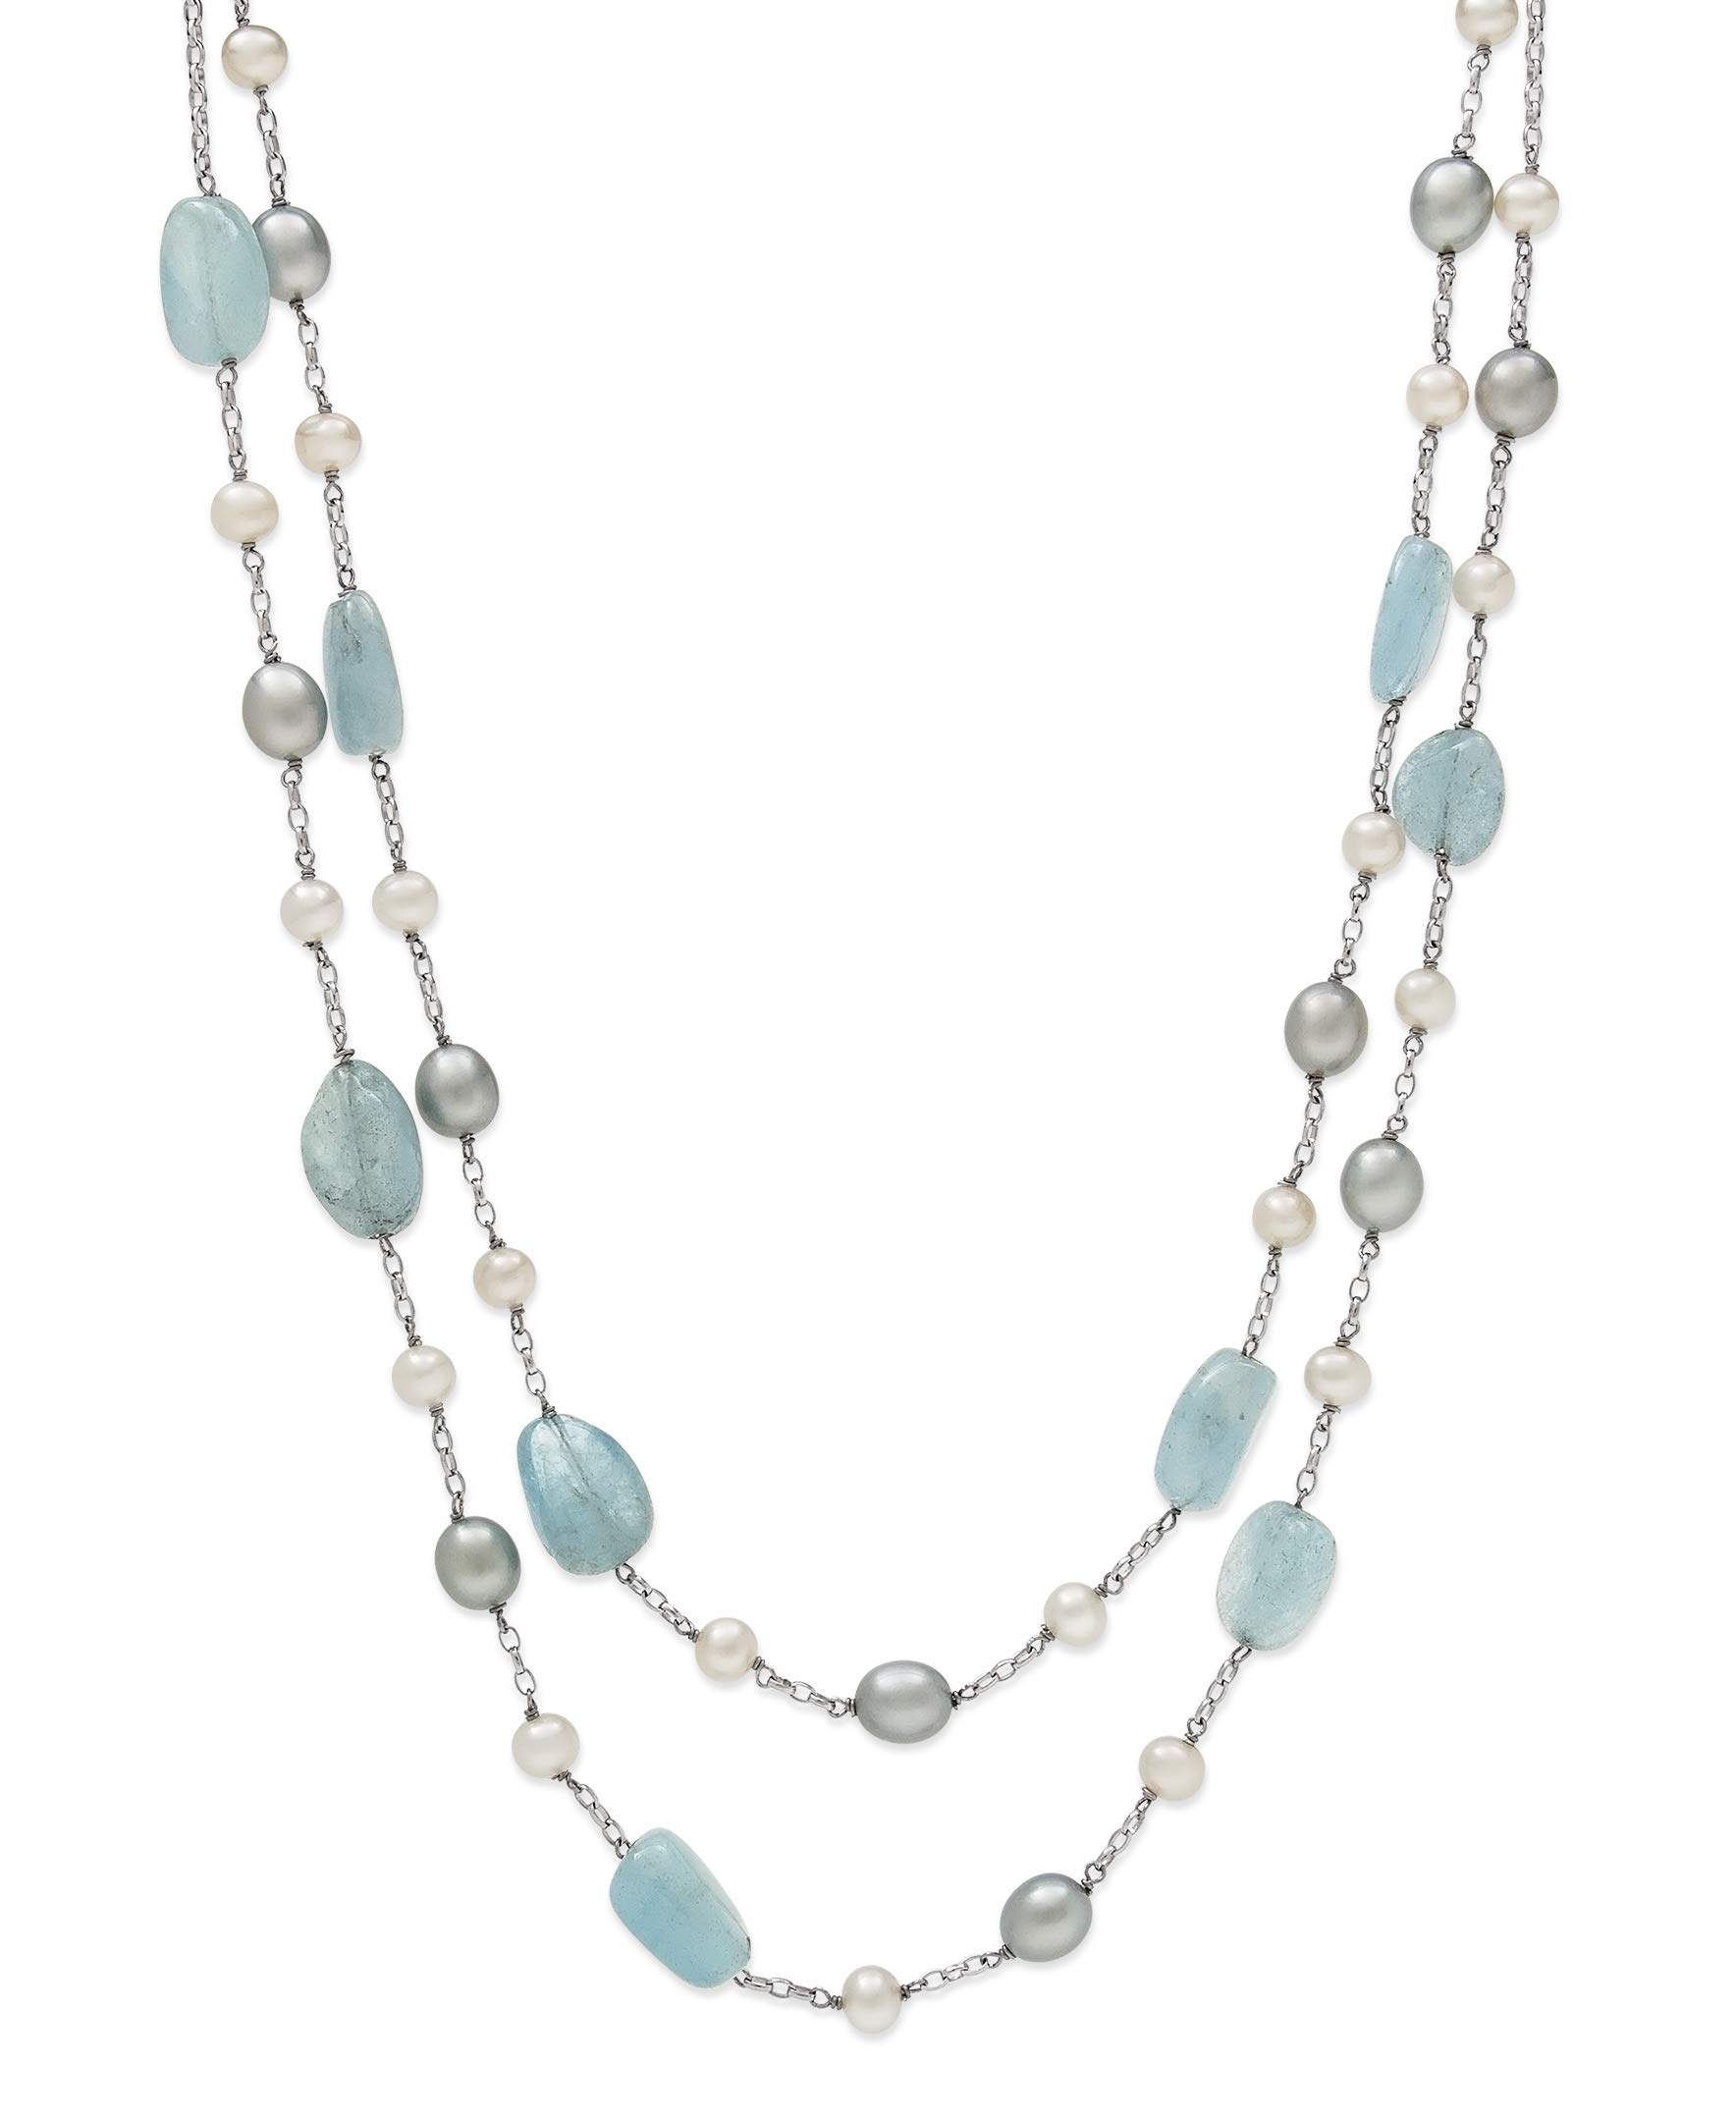 Belacqua Natural Aquamarine & Cultured Freshwater Pearl Layered Station Chain Necklace by Belacqua